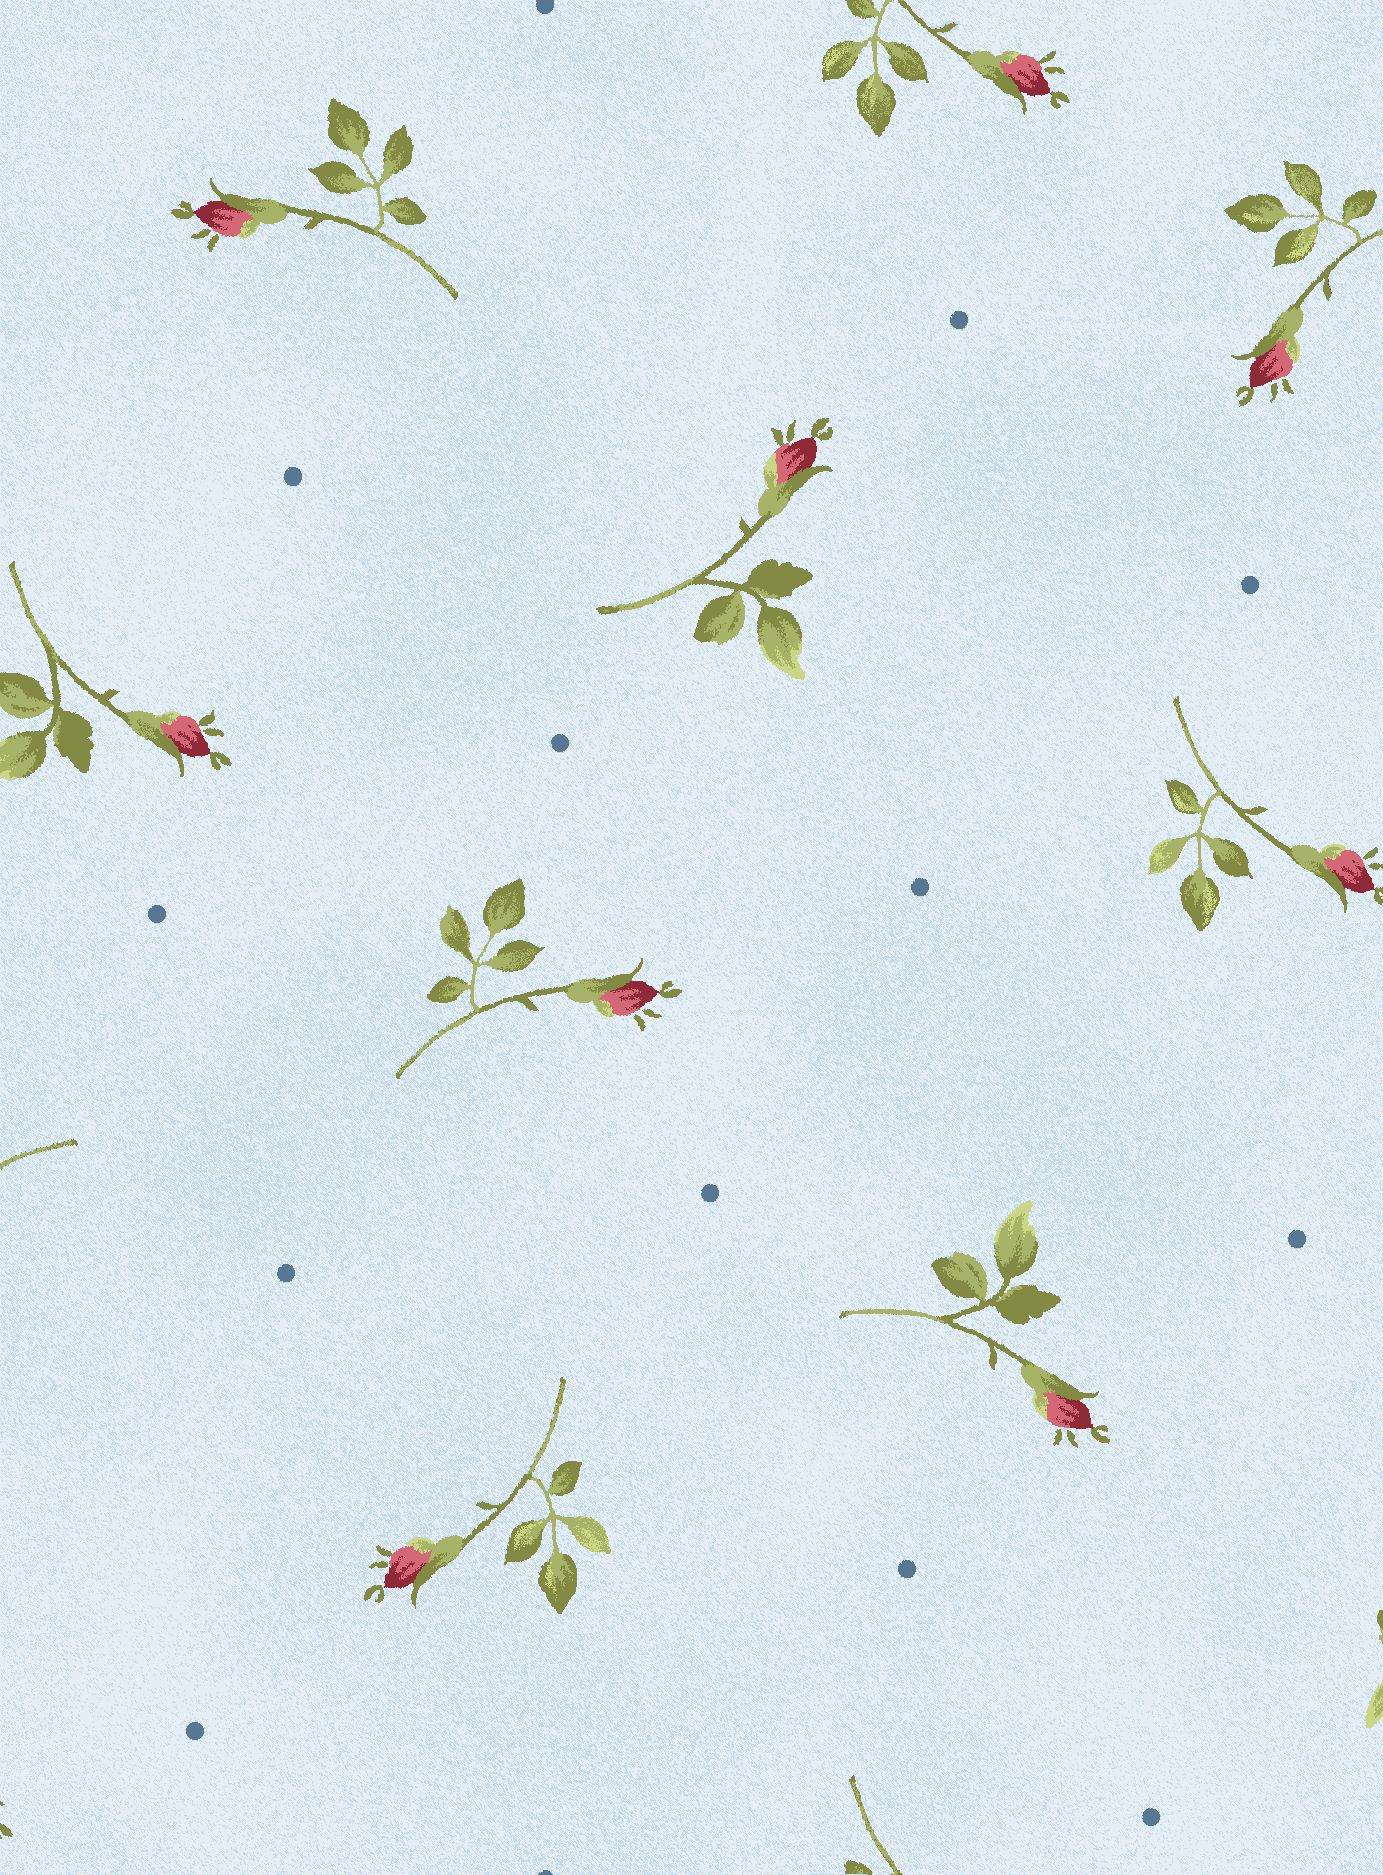 Rose Rosebud Quilt Quilting fabric Blue Rosebuds sage green fabrics by the yard